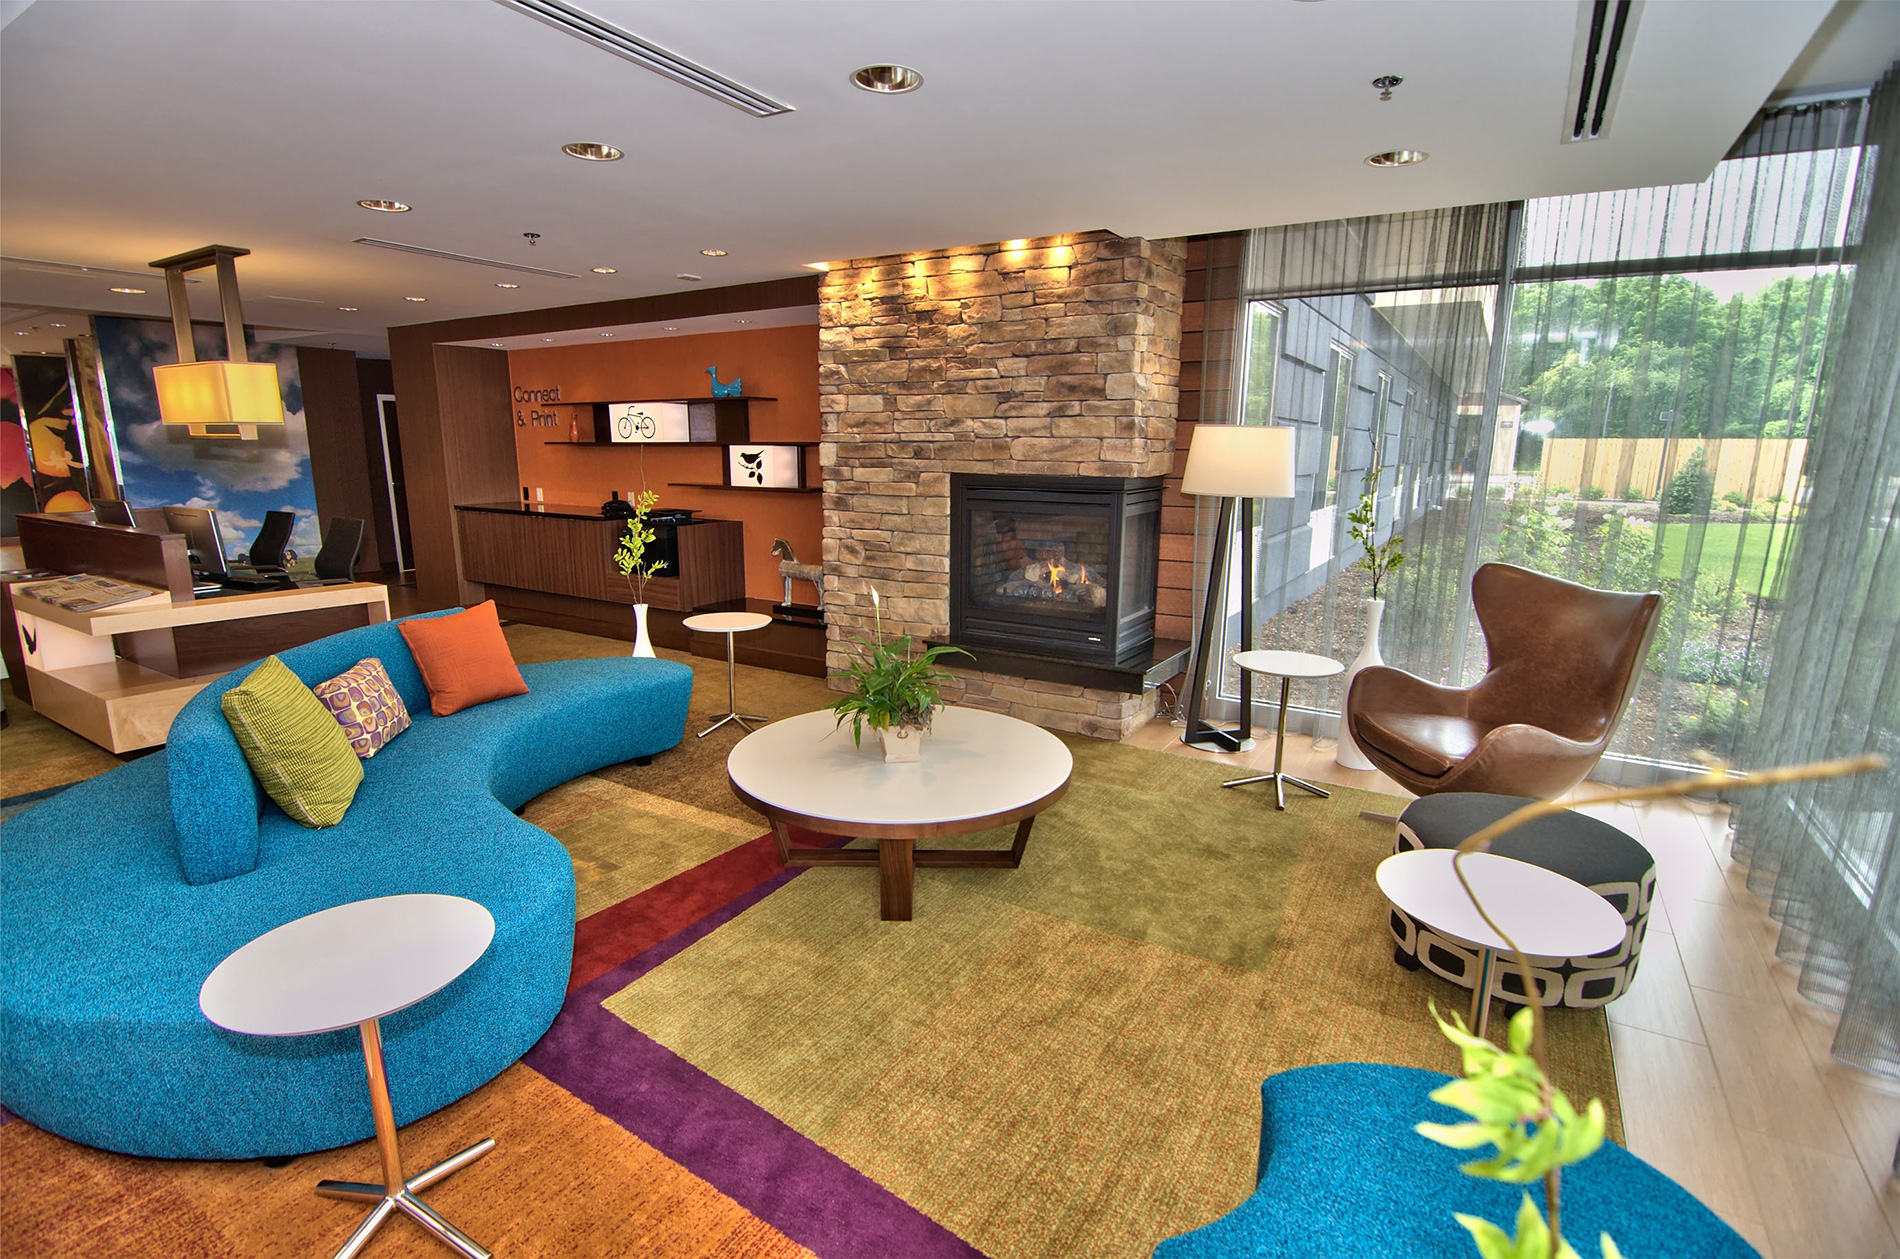 Shaner hotel group to convert crowne plaza paramus new for Design hotel group